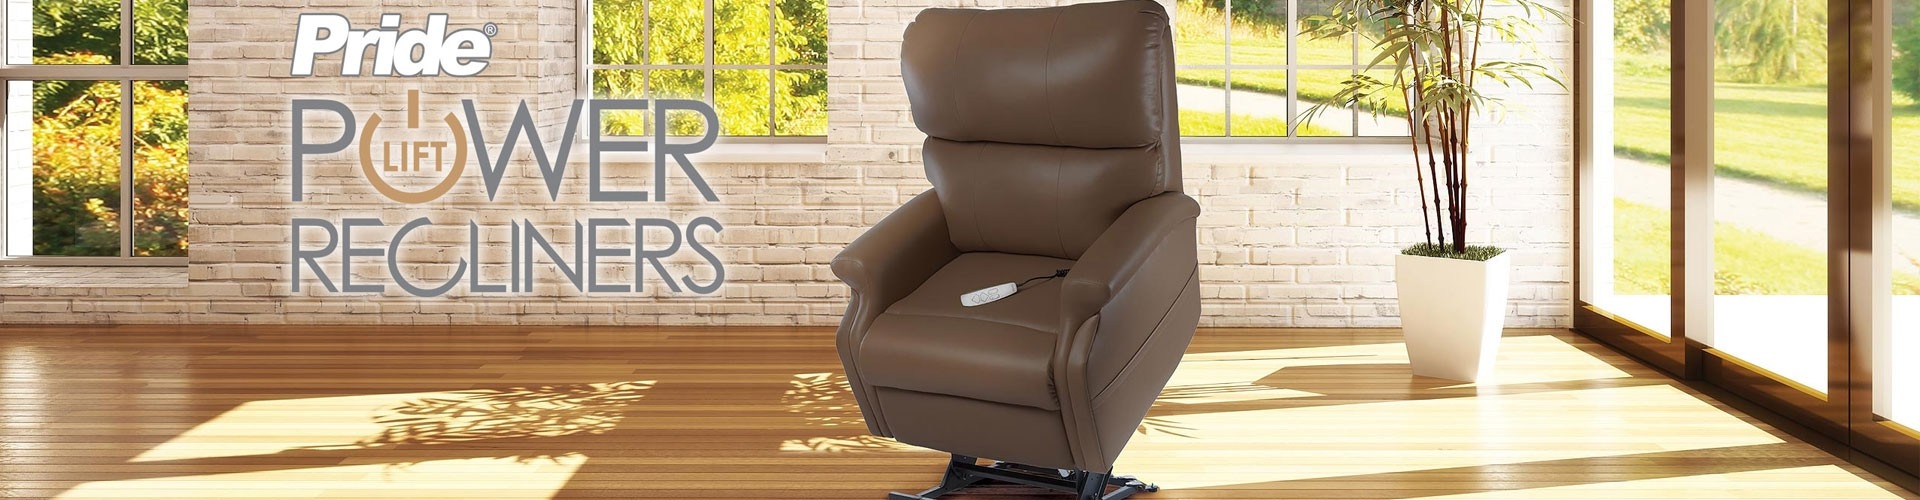 number rotmans ottocamel power motion chair recliner lift chairs products nm windermere way reclining item